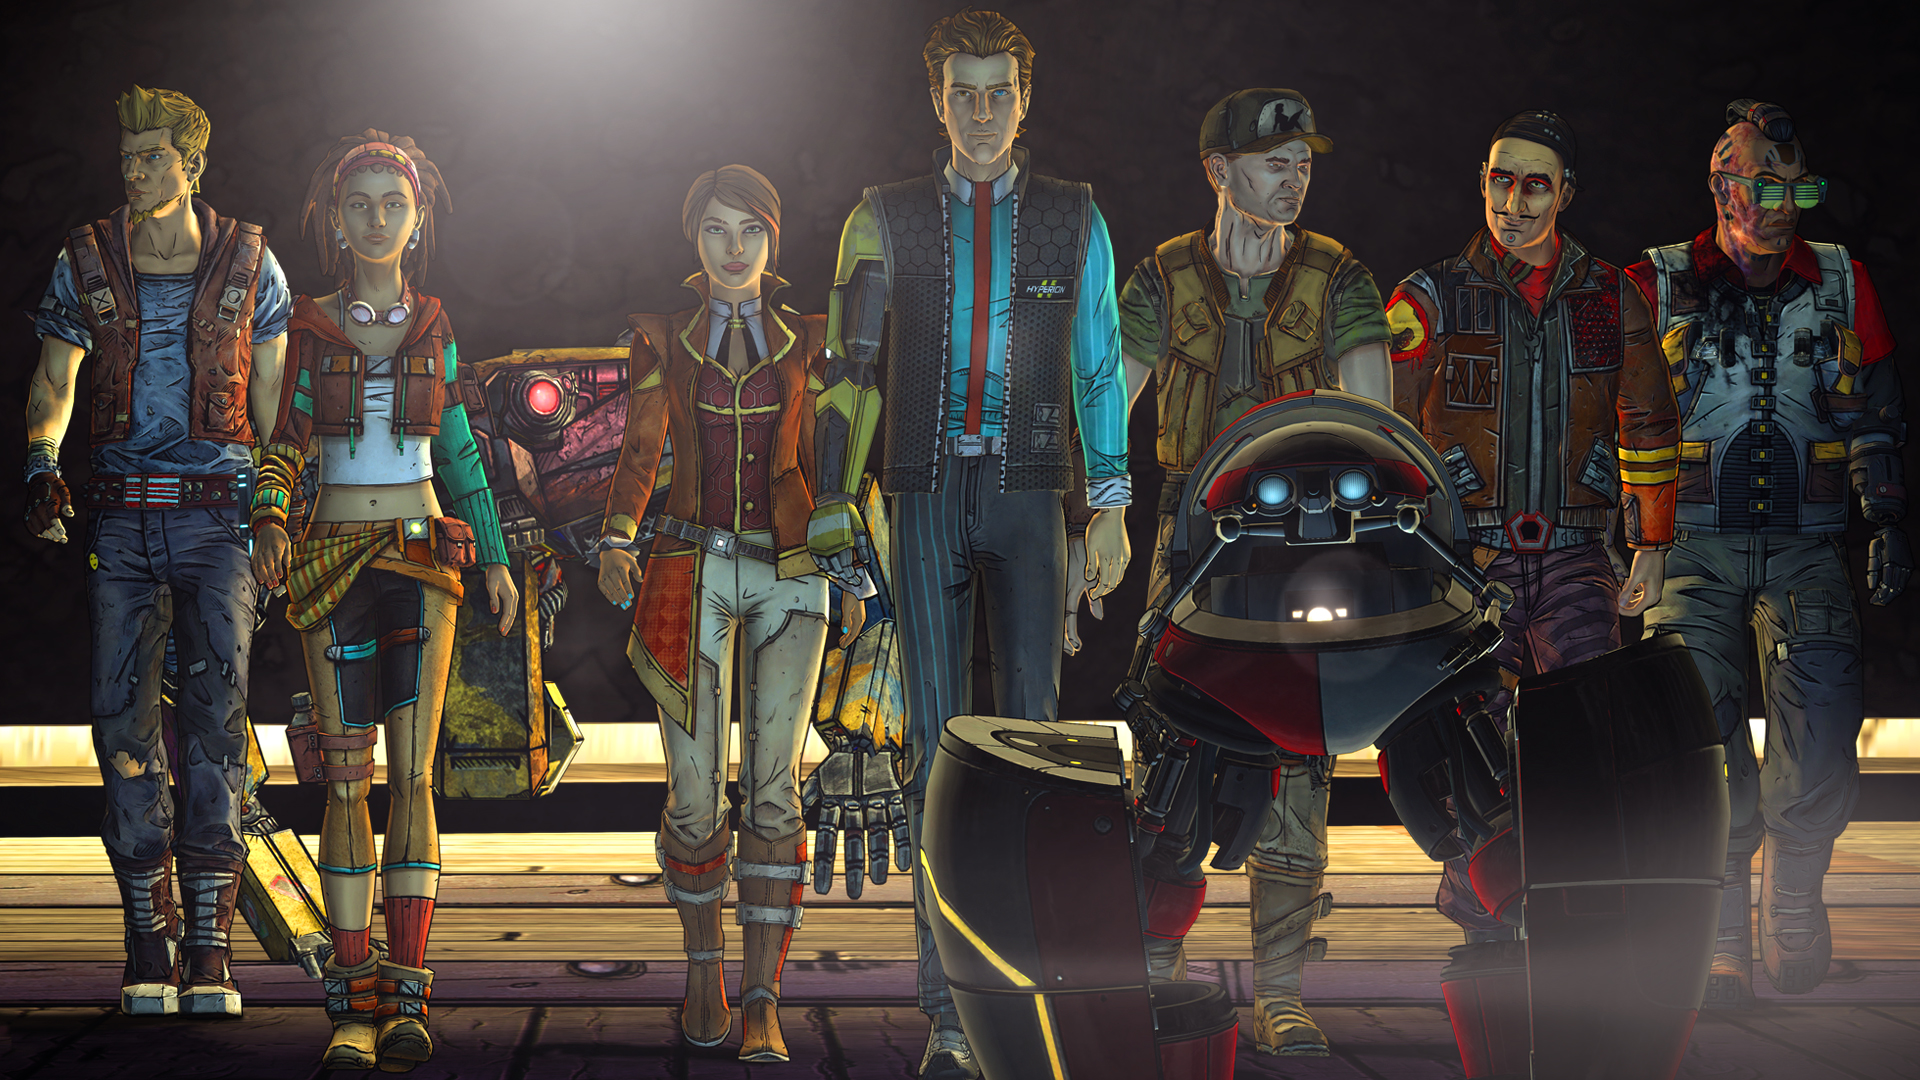 tales_from_the_borderlands_episode_4 (6)